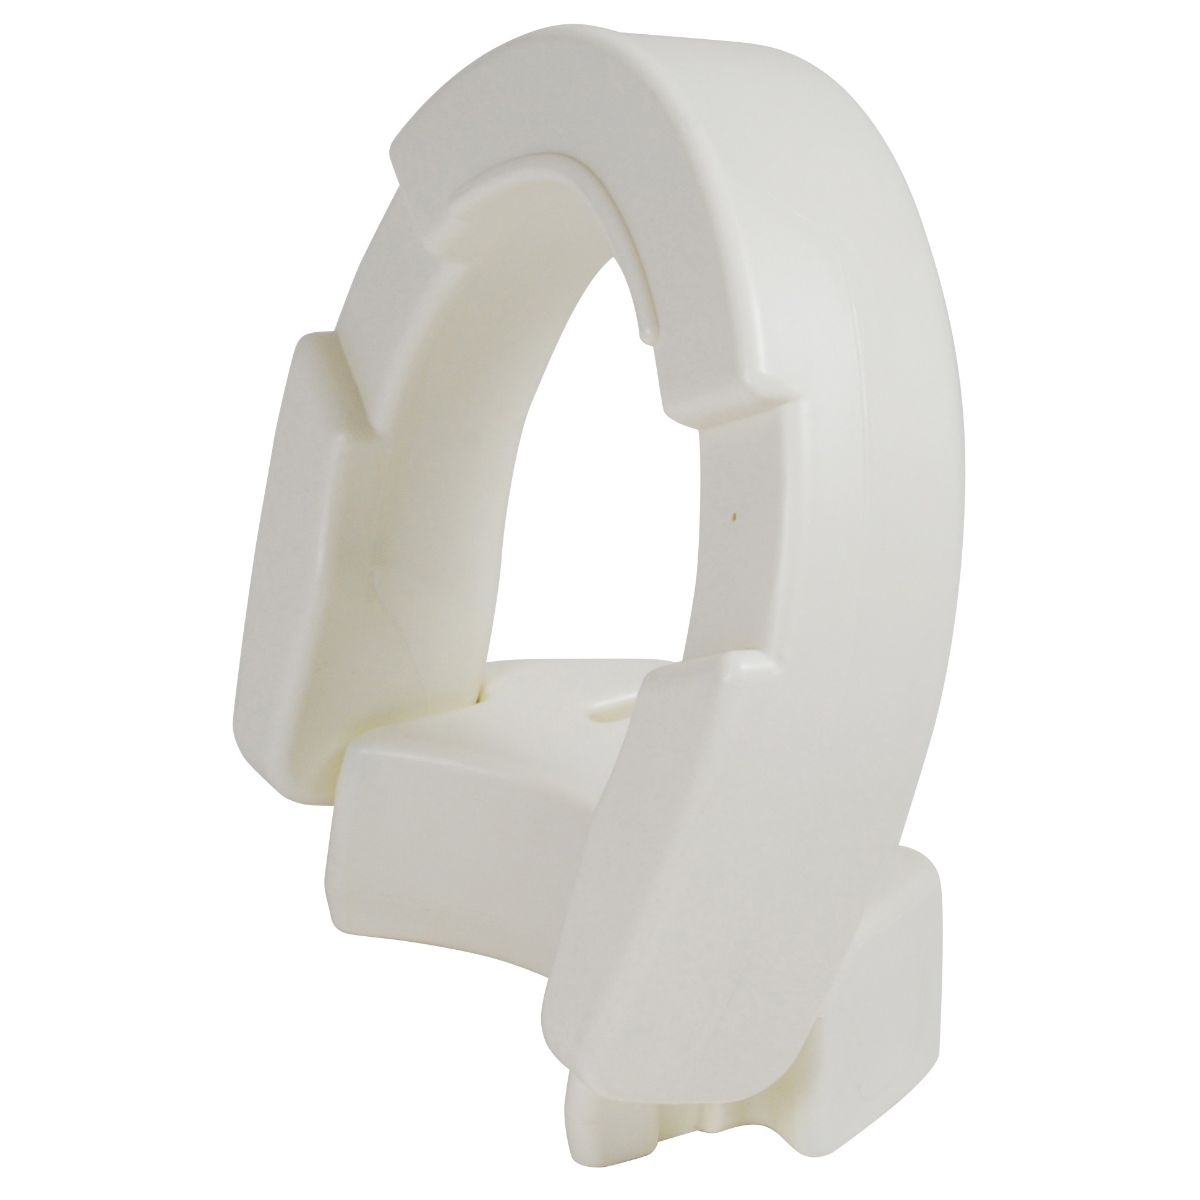 Hinged Toilet Seat Riser Buy Now Free Shipping